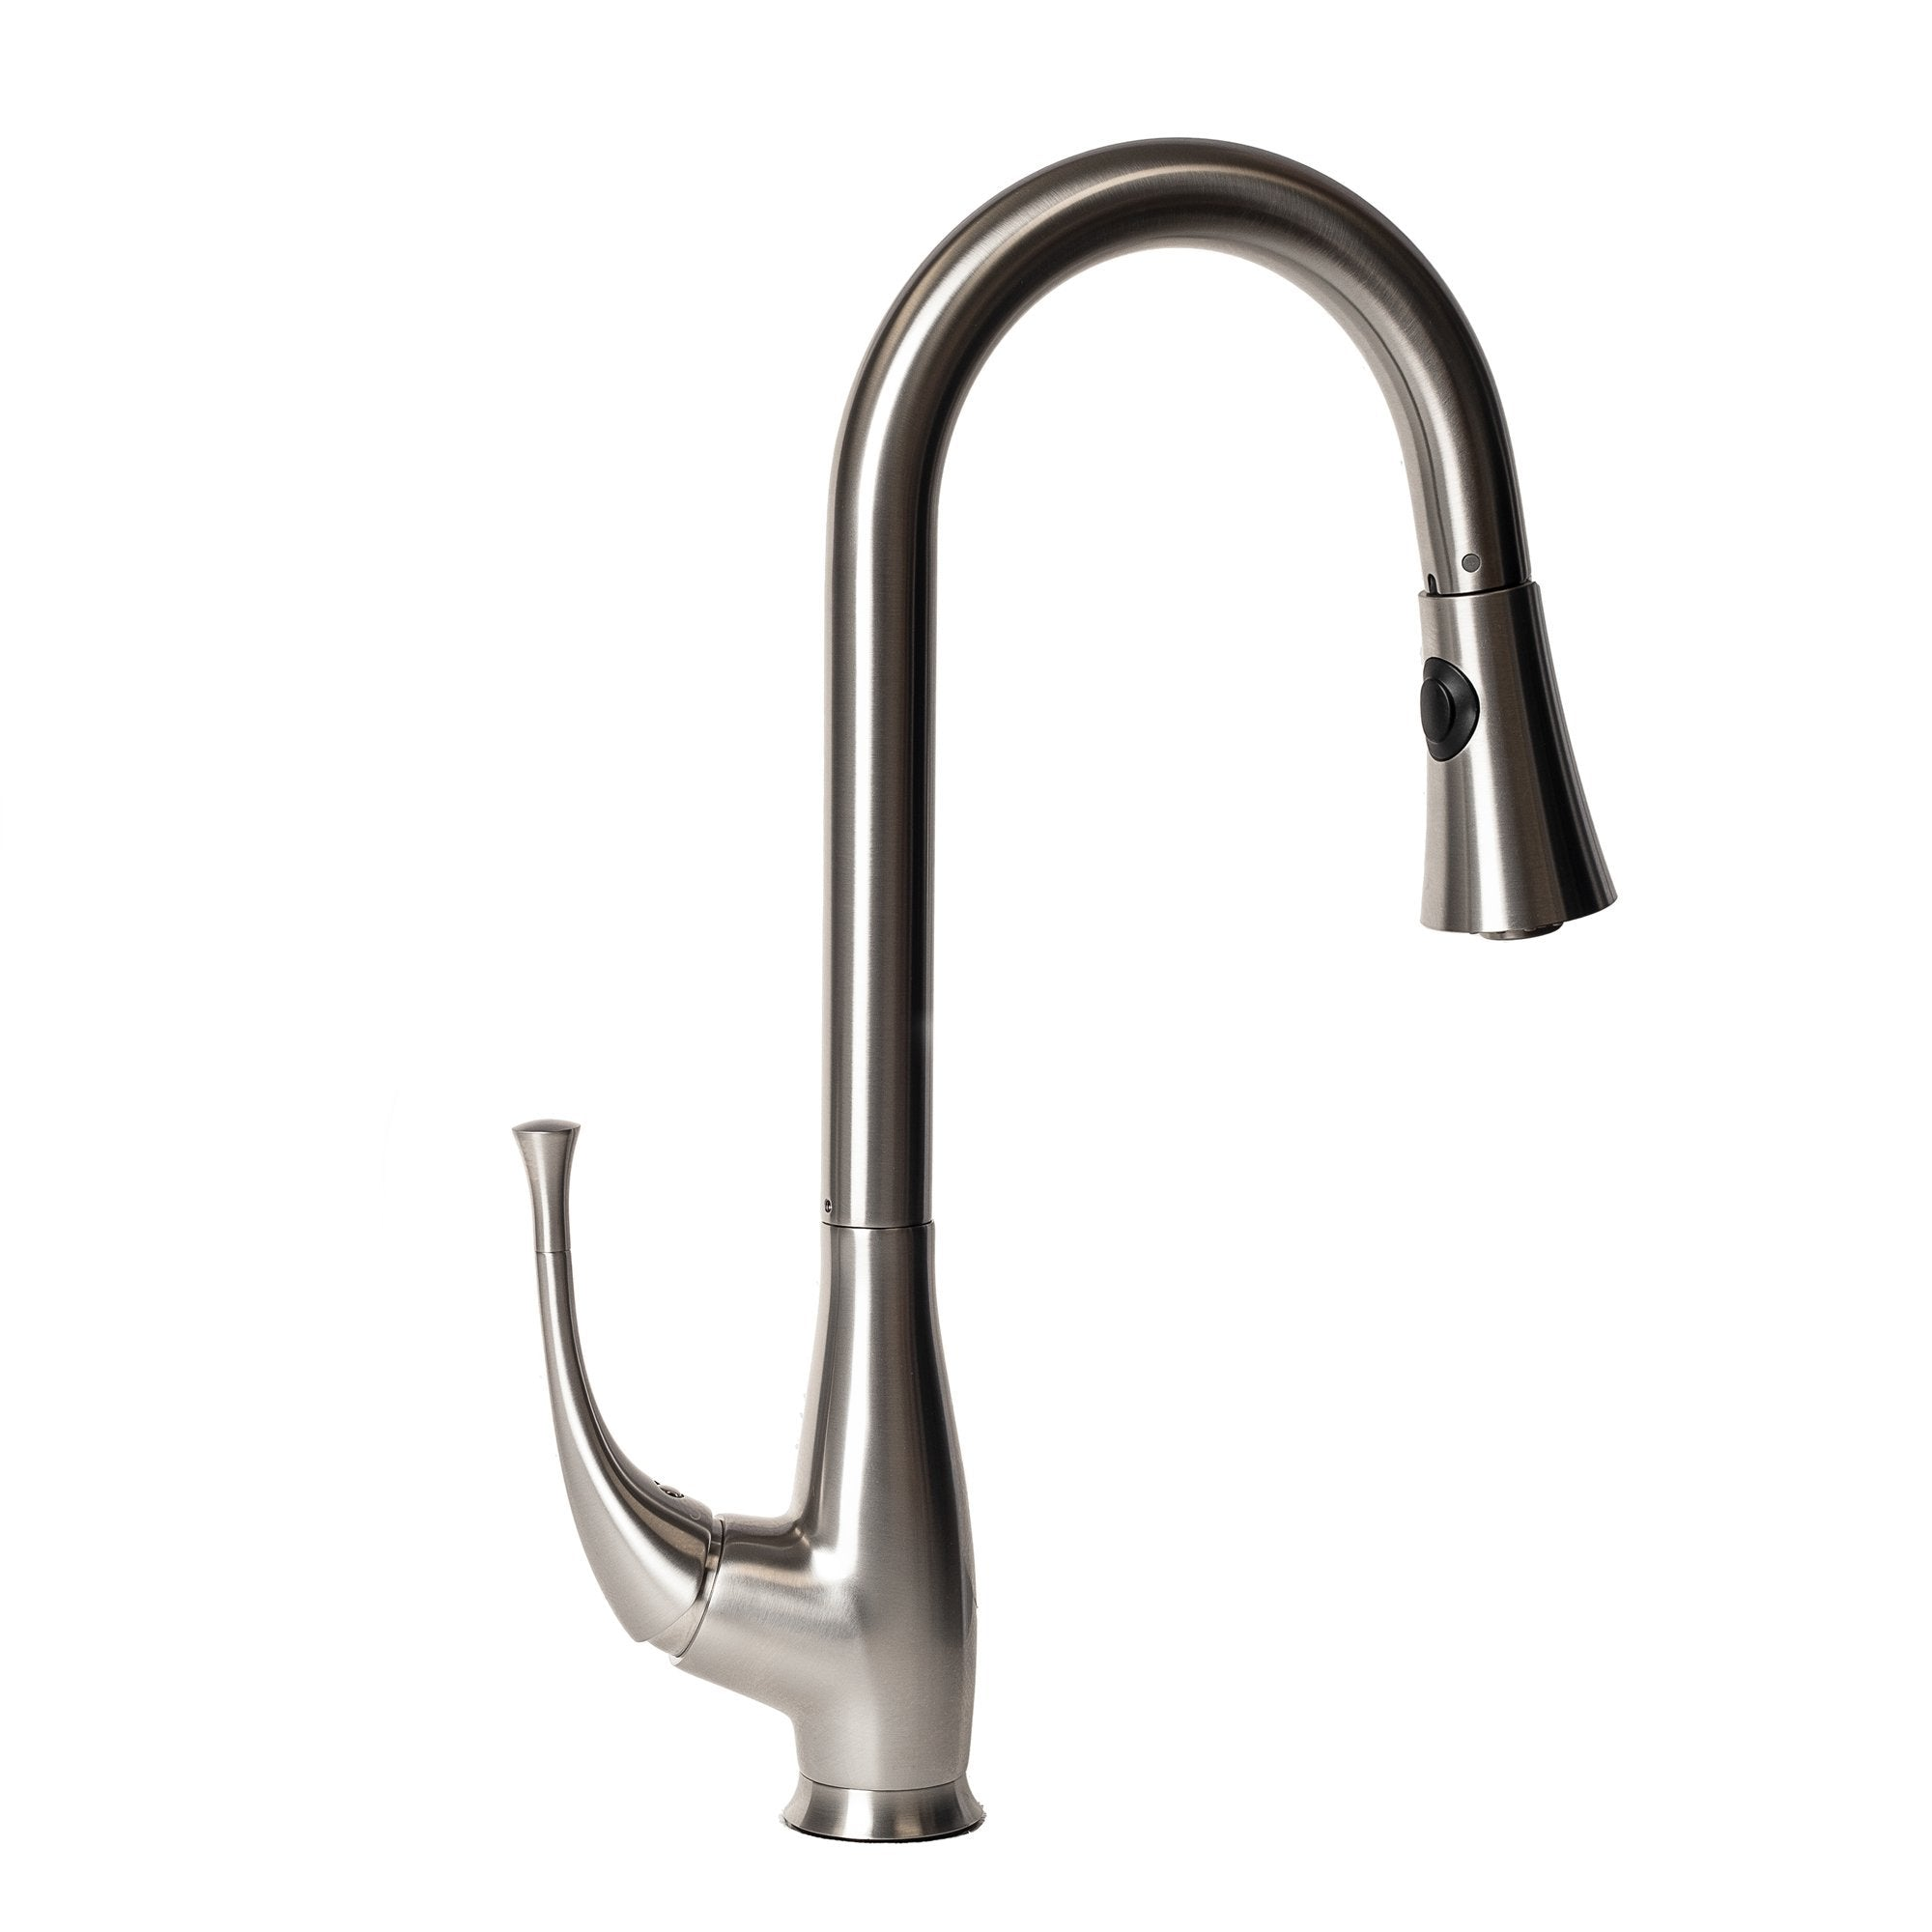 ZLINE Castor Kitchen Faucet with Color Options (CAS-KF)